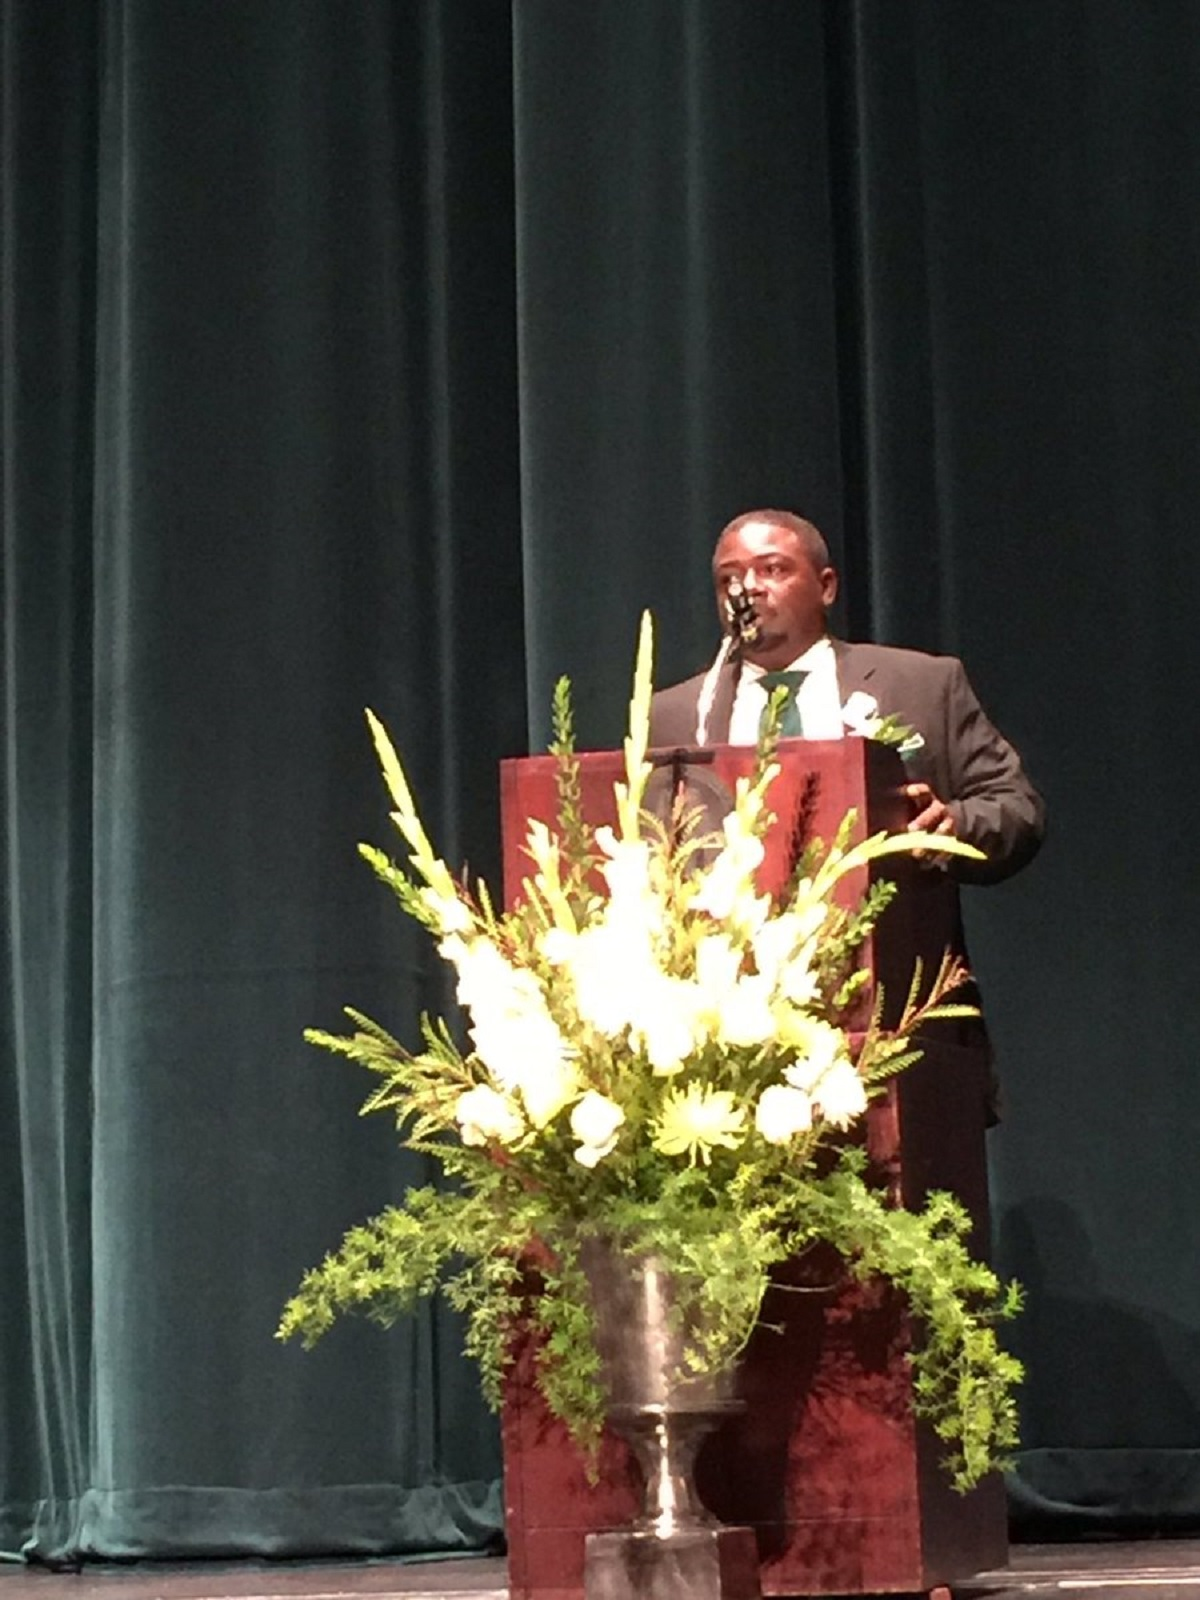 Coach Rico McDonald being inducted into the Delta State Football Hall of Fame